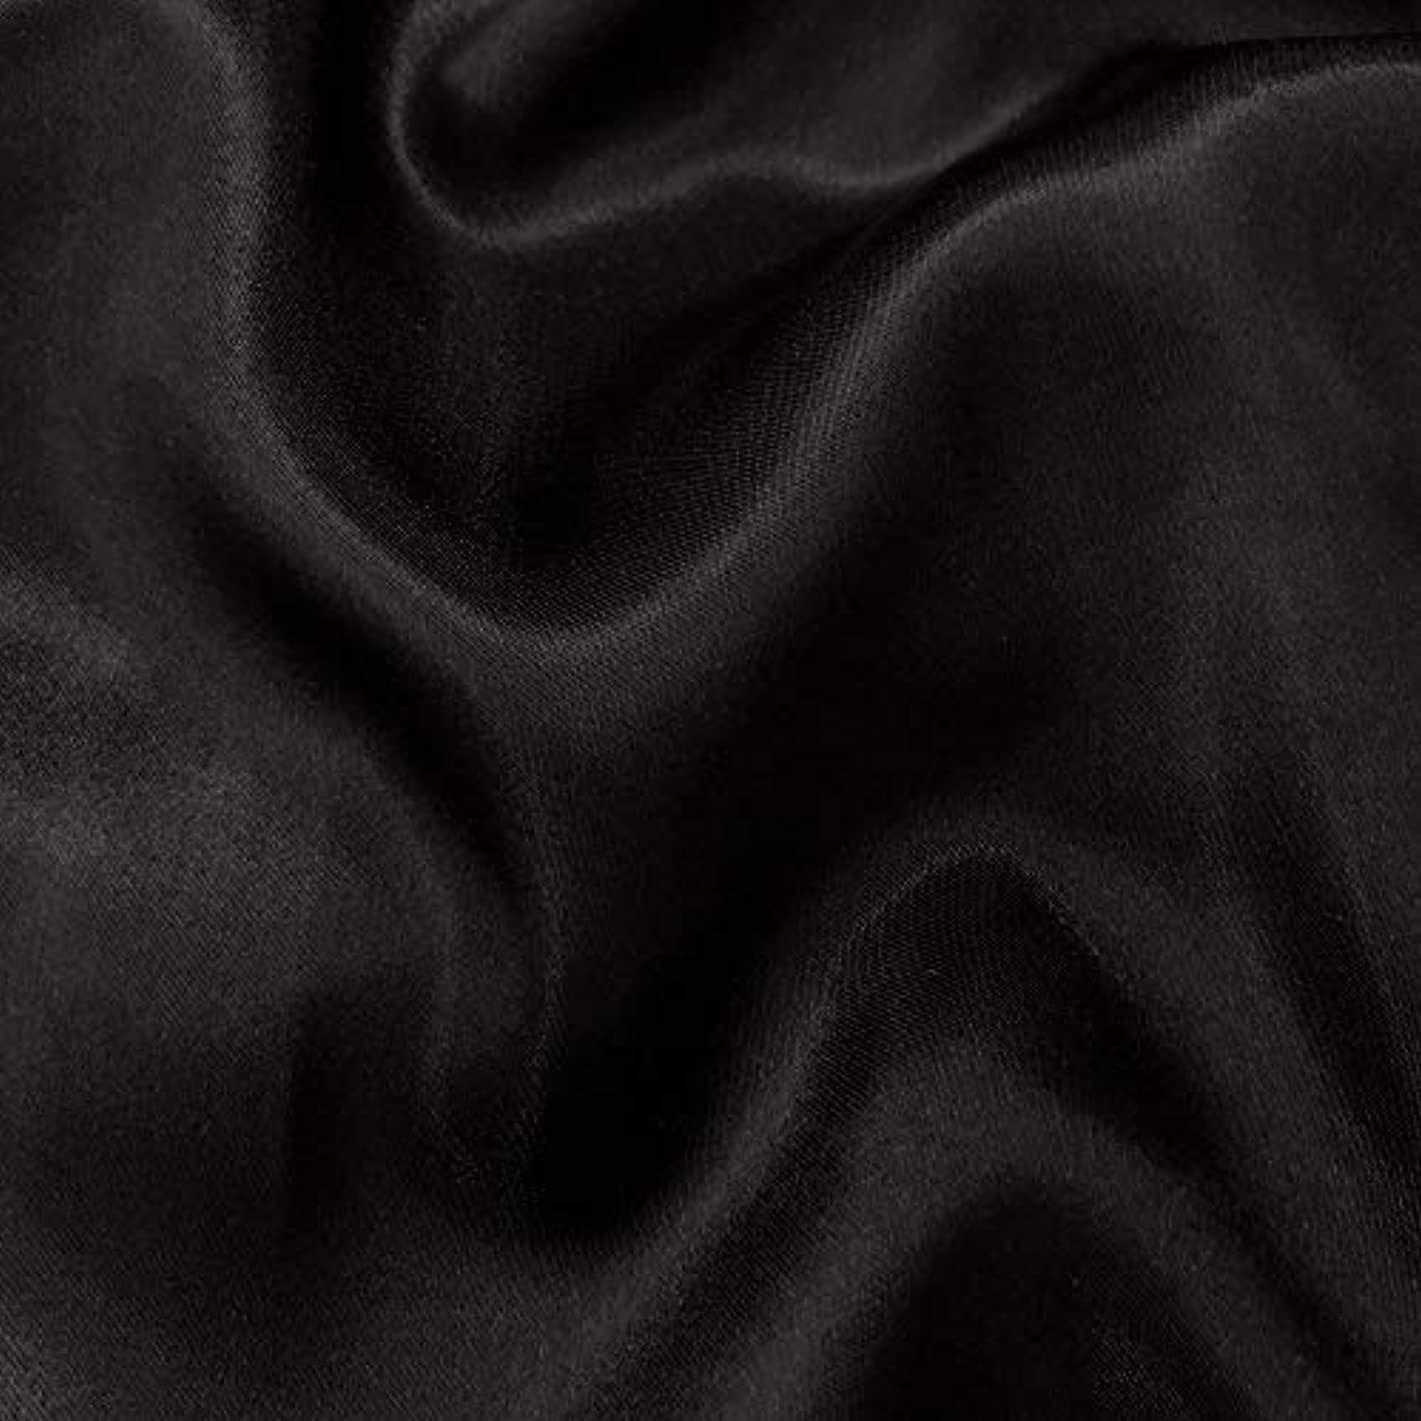 """mds Pack of 5 Yard Charmeuse Bridal Solid Satin Fabric for Wedding Dress Fashion Crafts Costumes Decorations Silky Satin 44""""- Black"""